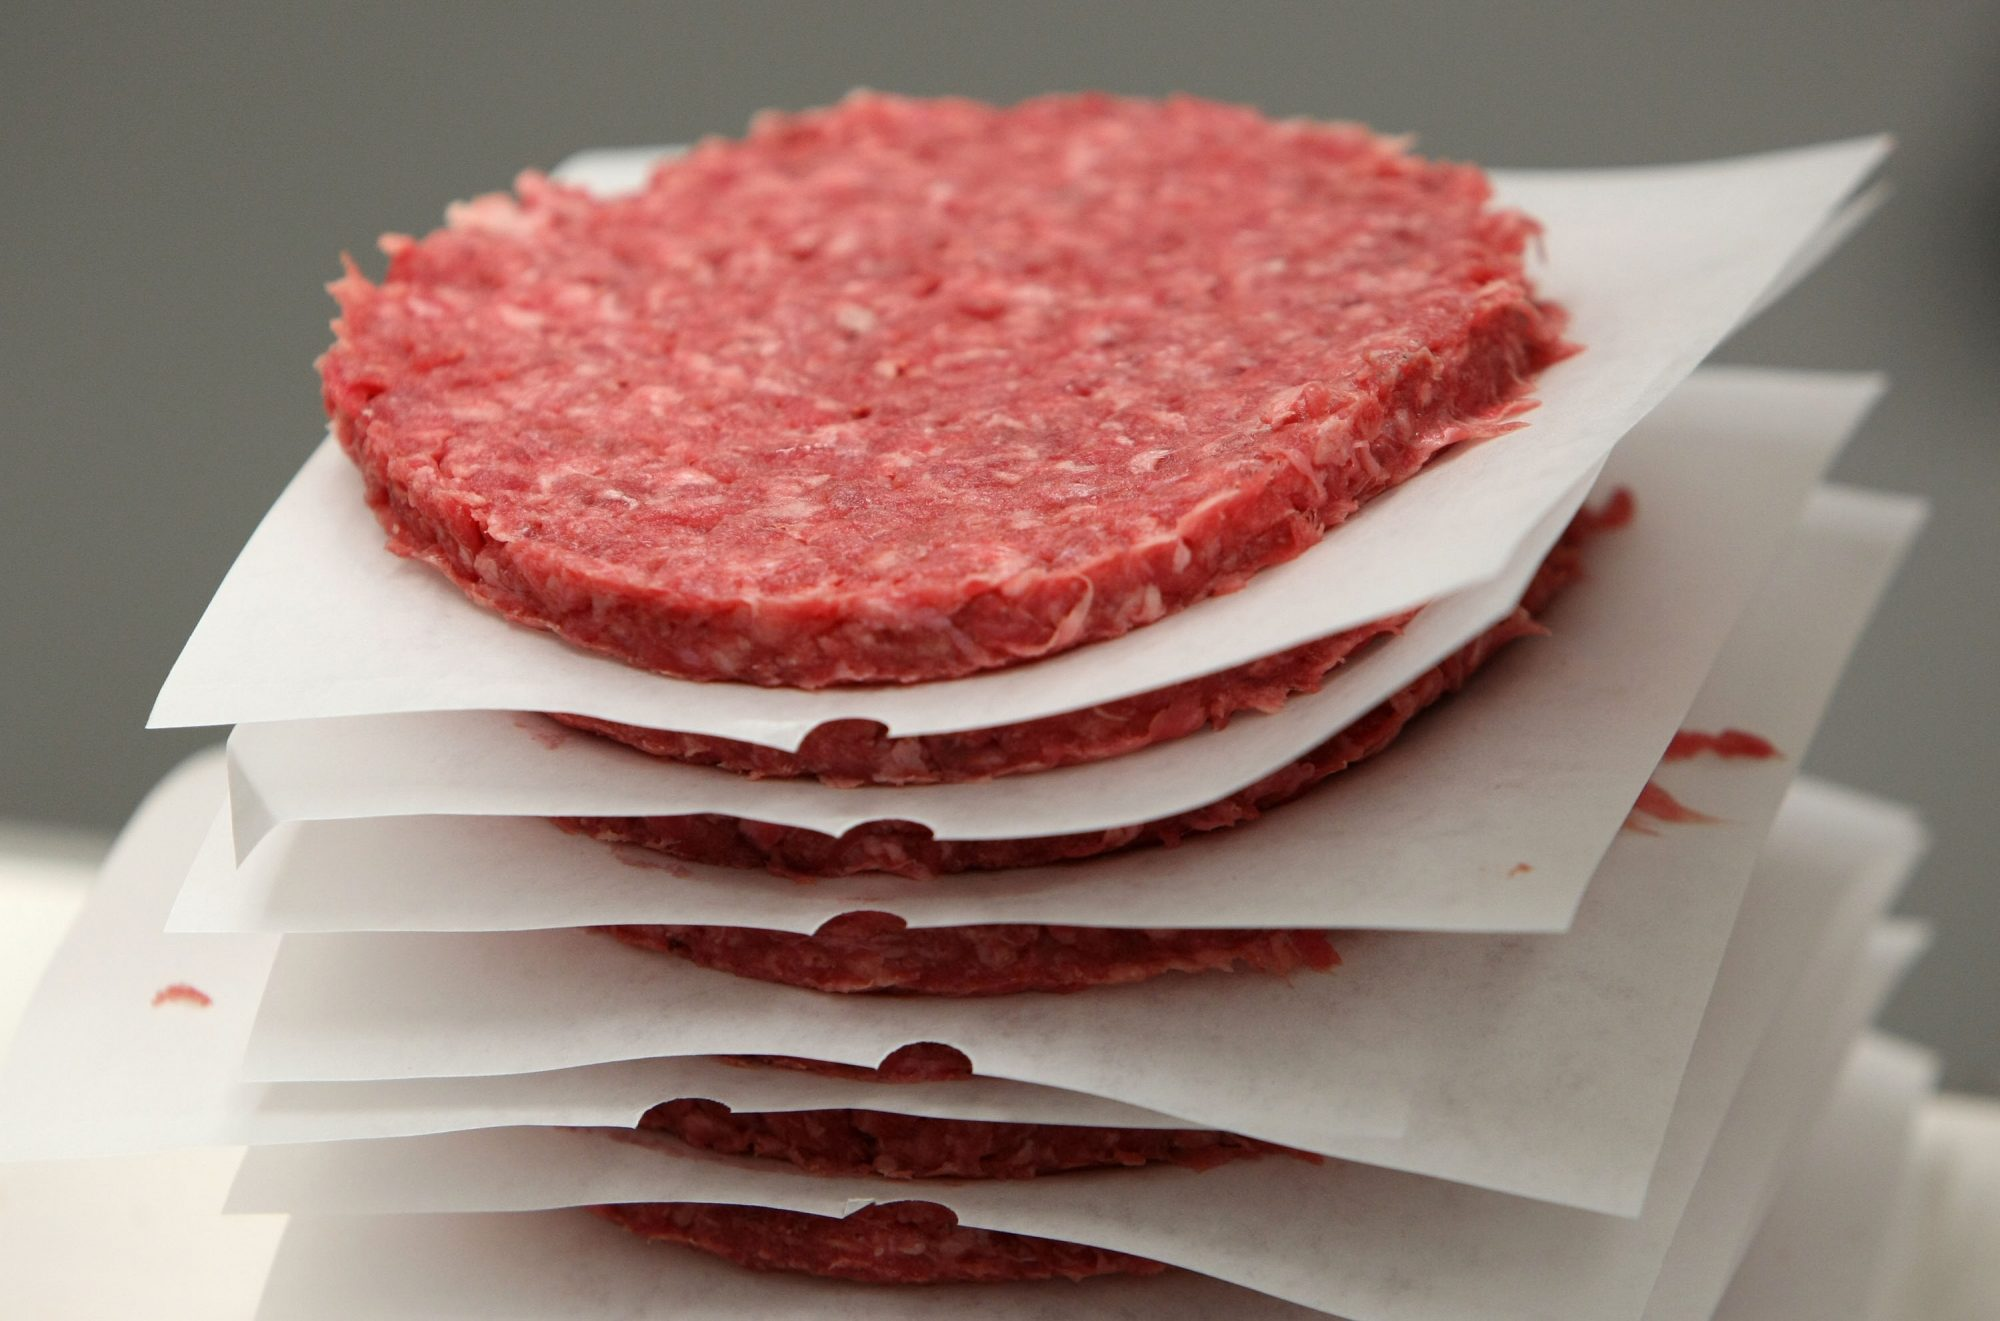 Meat Prices Expected To Increase Higher Due To Midwest Flooding